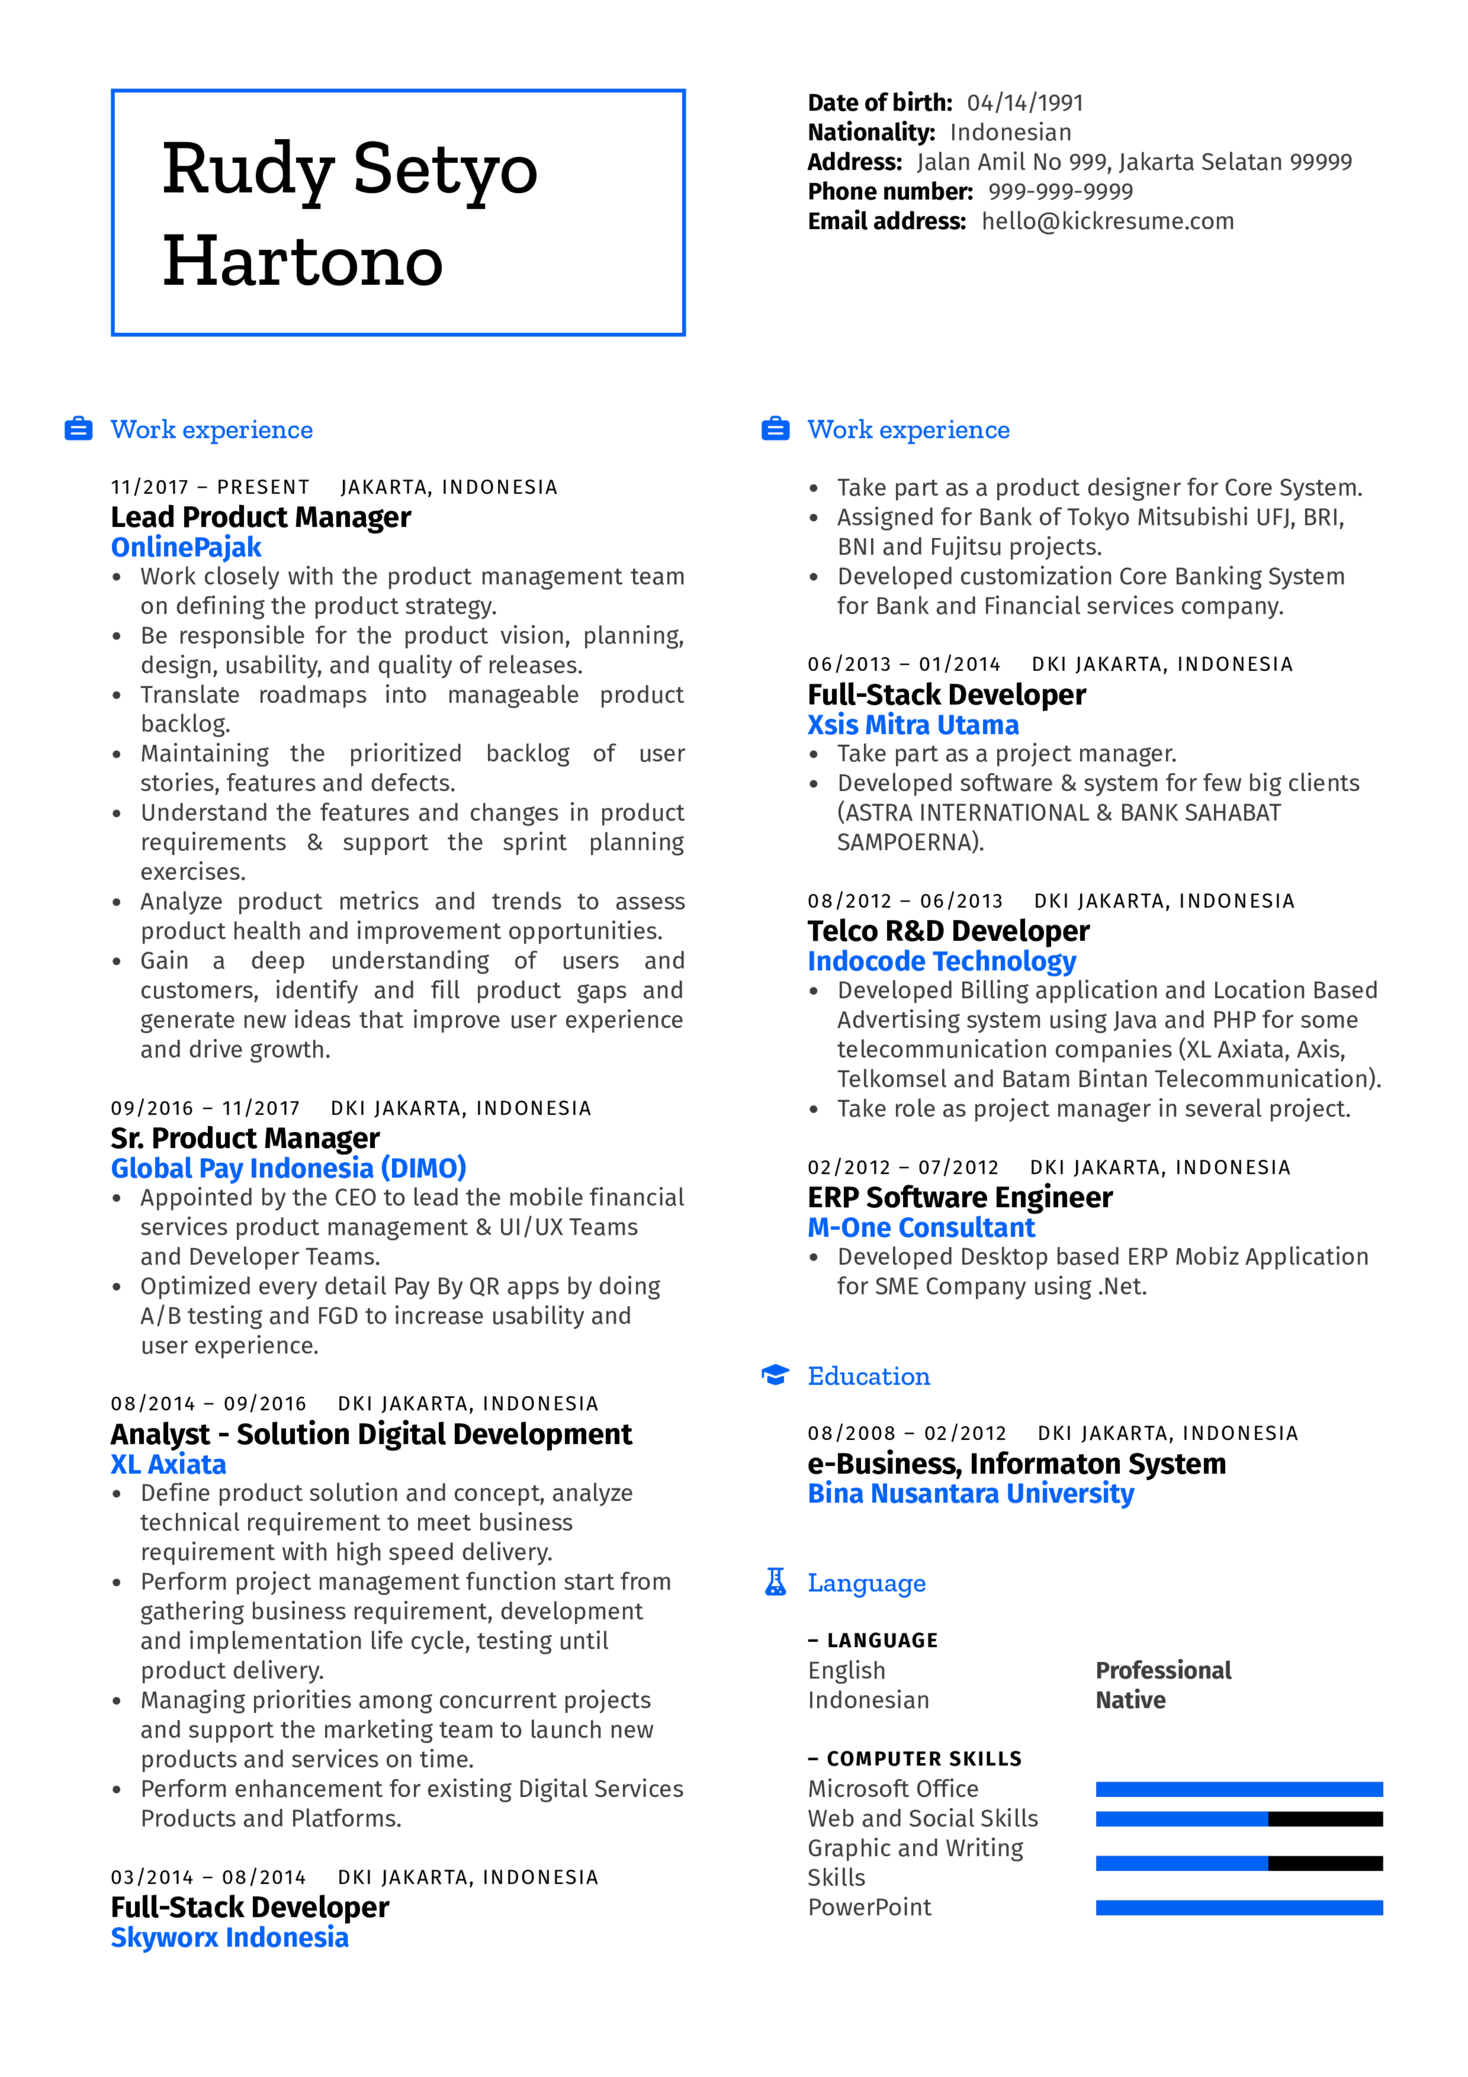 Senior Product Manager Resume Example (Part 1)